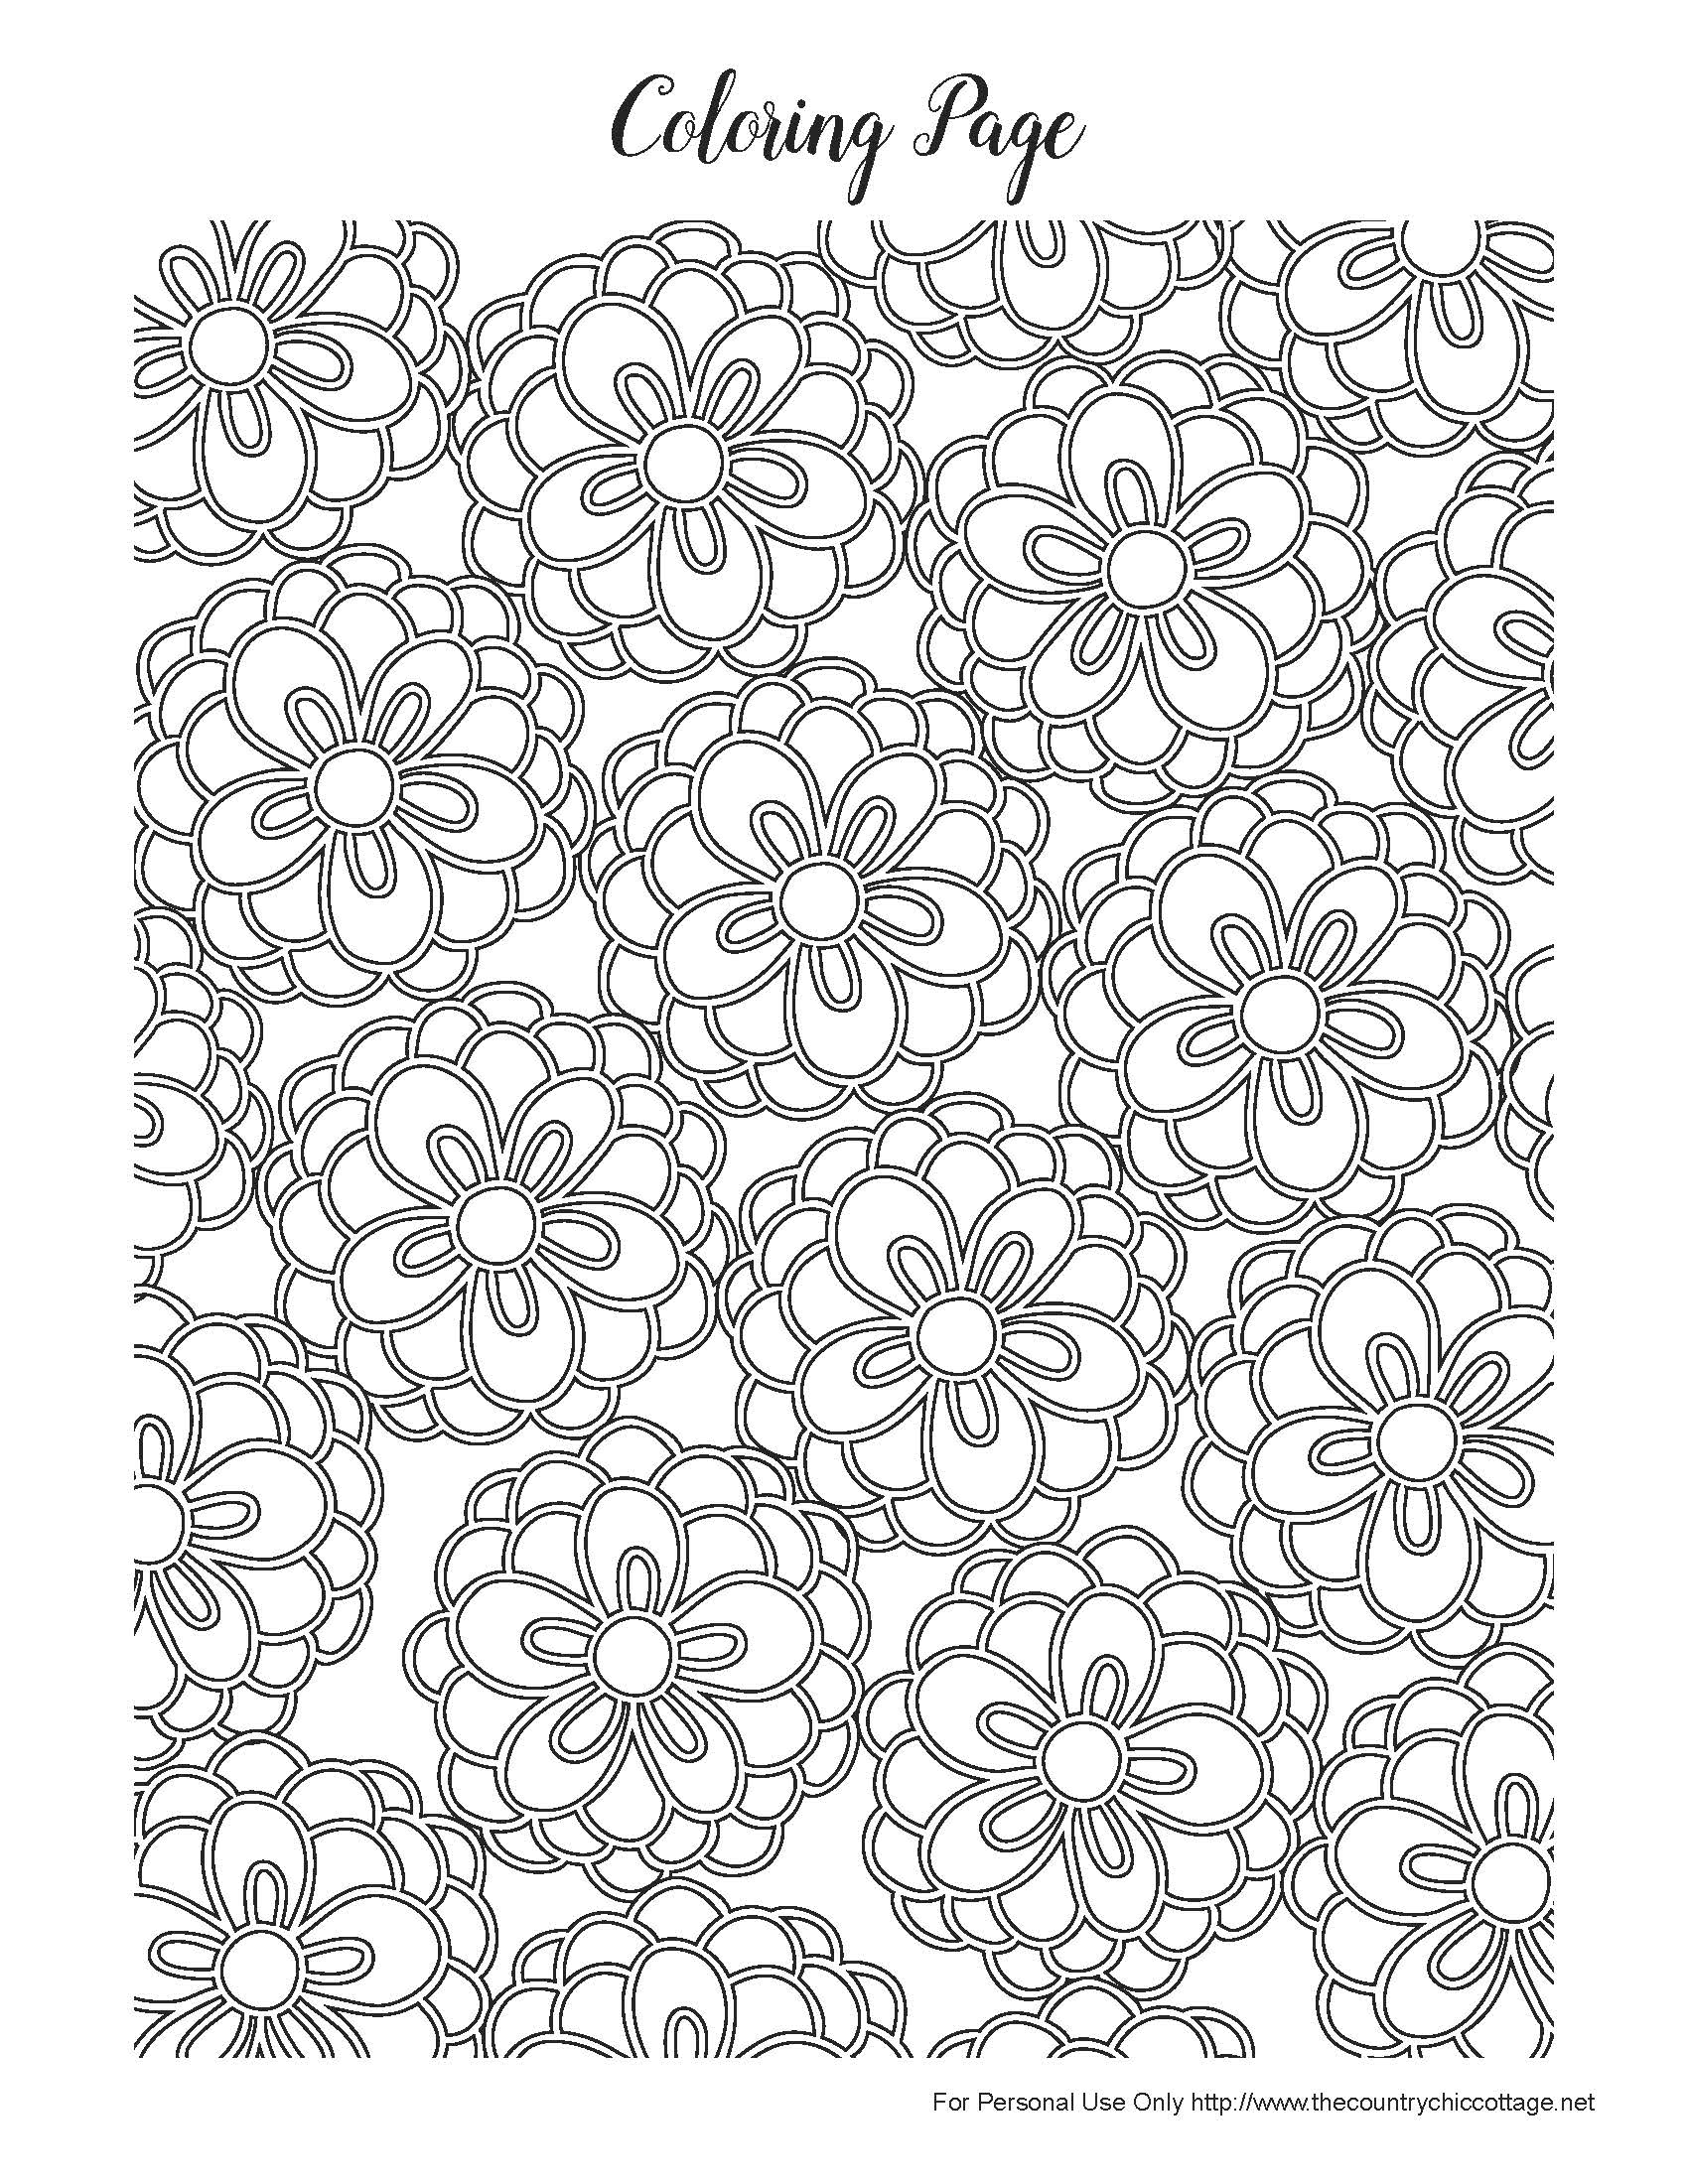 Free Spring Coloring Pages for Adults - The Country Chic Cottage